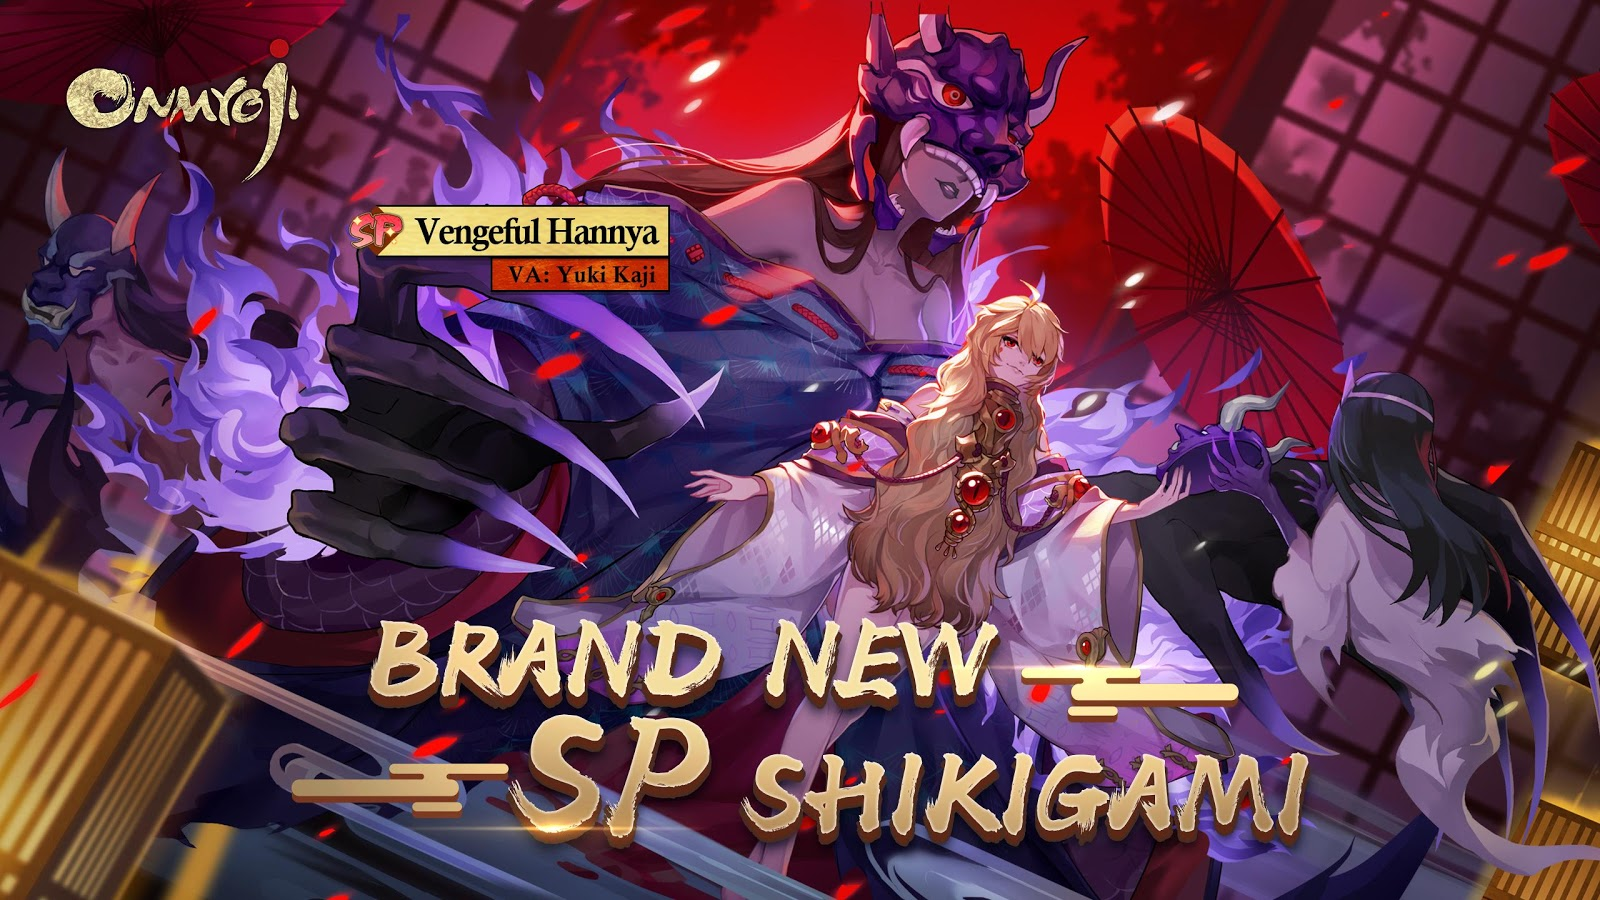 Onmyoji 1 0 51 APK + OBB (Data File) Download - Android Role